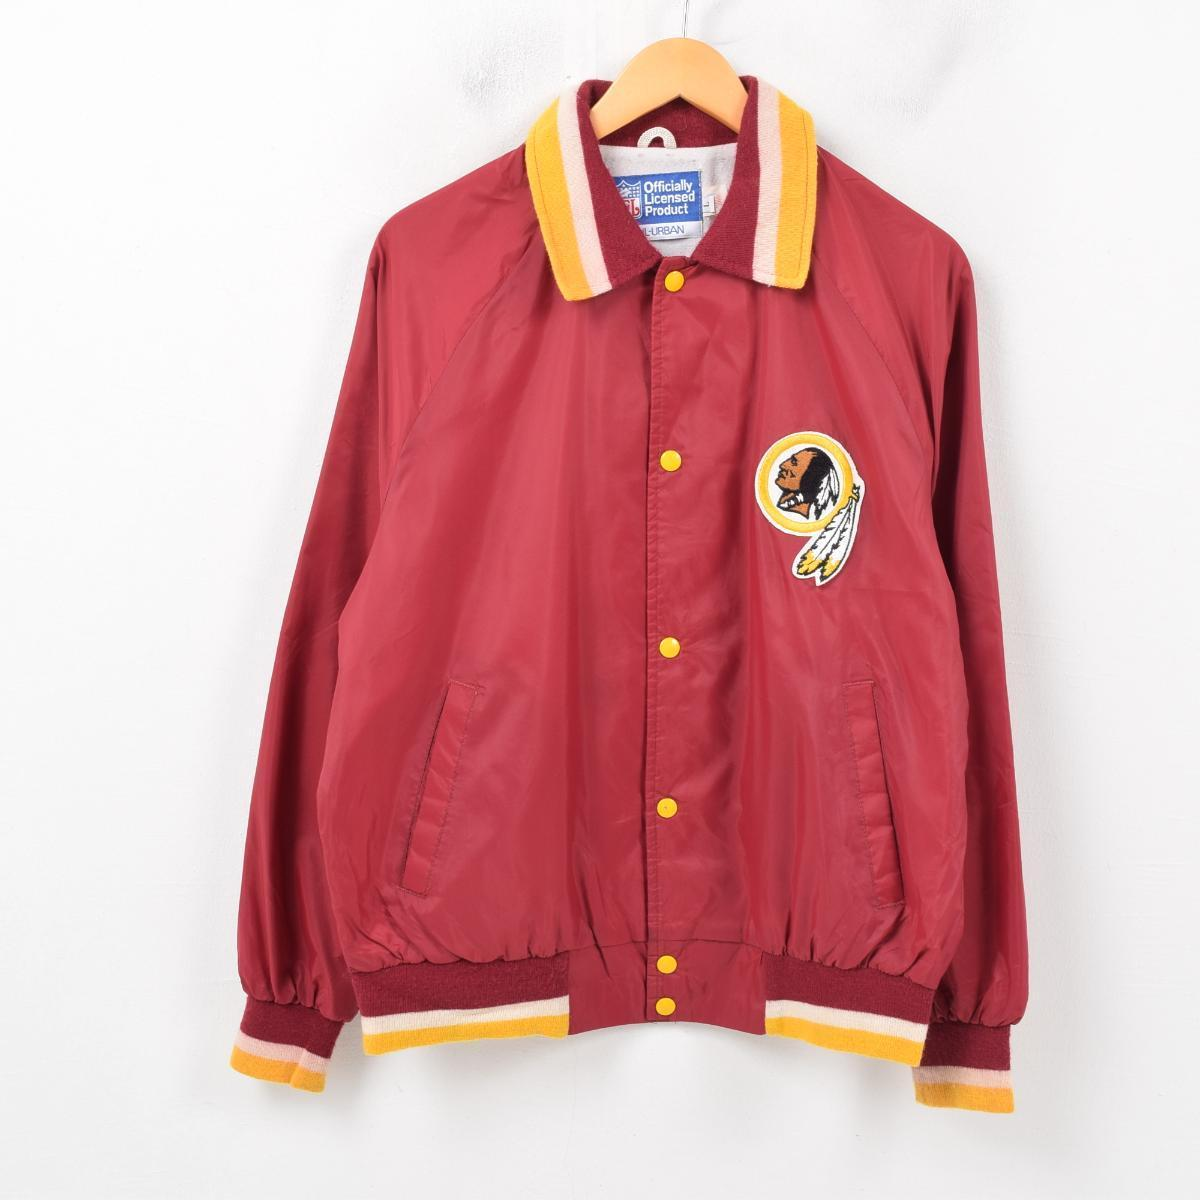 huge selection of 344e8 06767 Men L /wbb1019 made in NFL OFFICIAL LICENSED PRODUCT NFL WASHINGTON  REDSKINS Washington Redskins nylon award jacket Award jacket USA